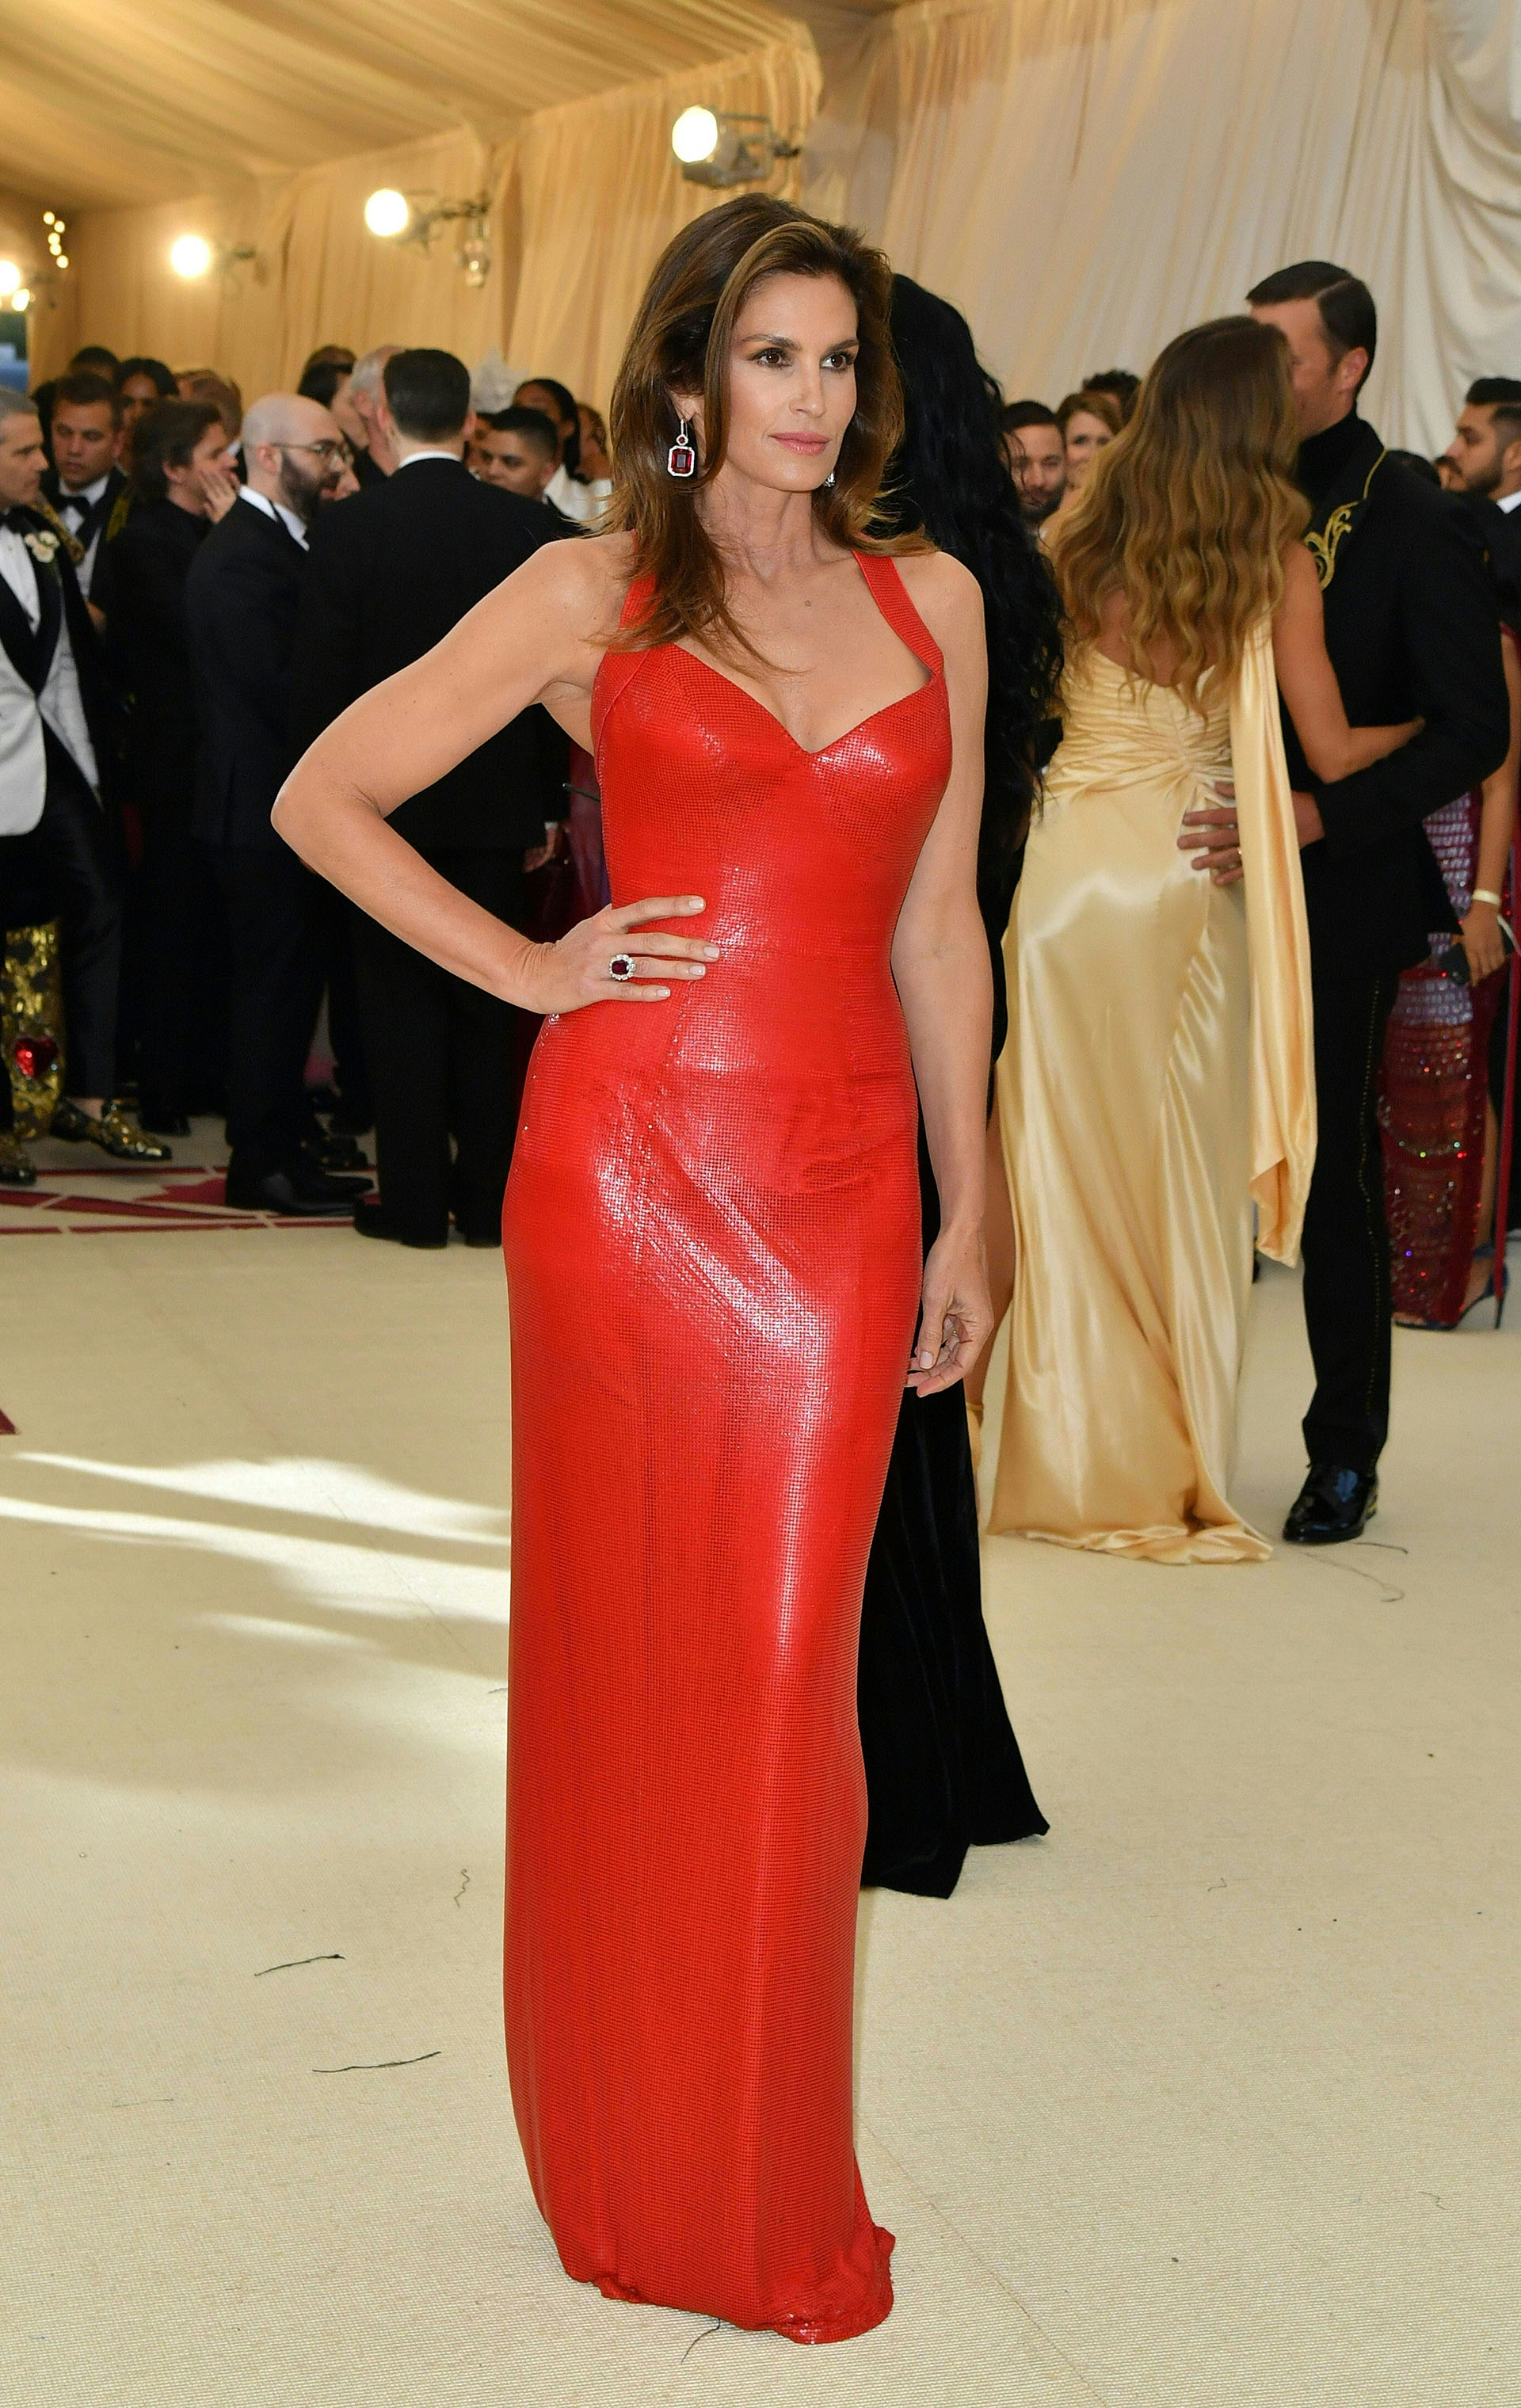 Cindy Crawford en total red look